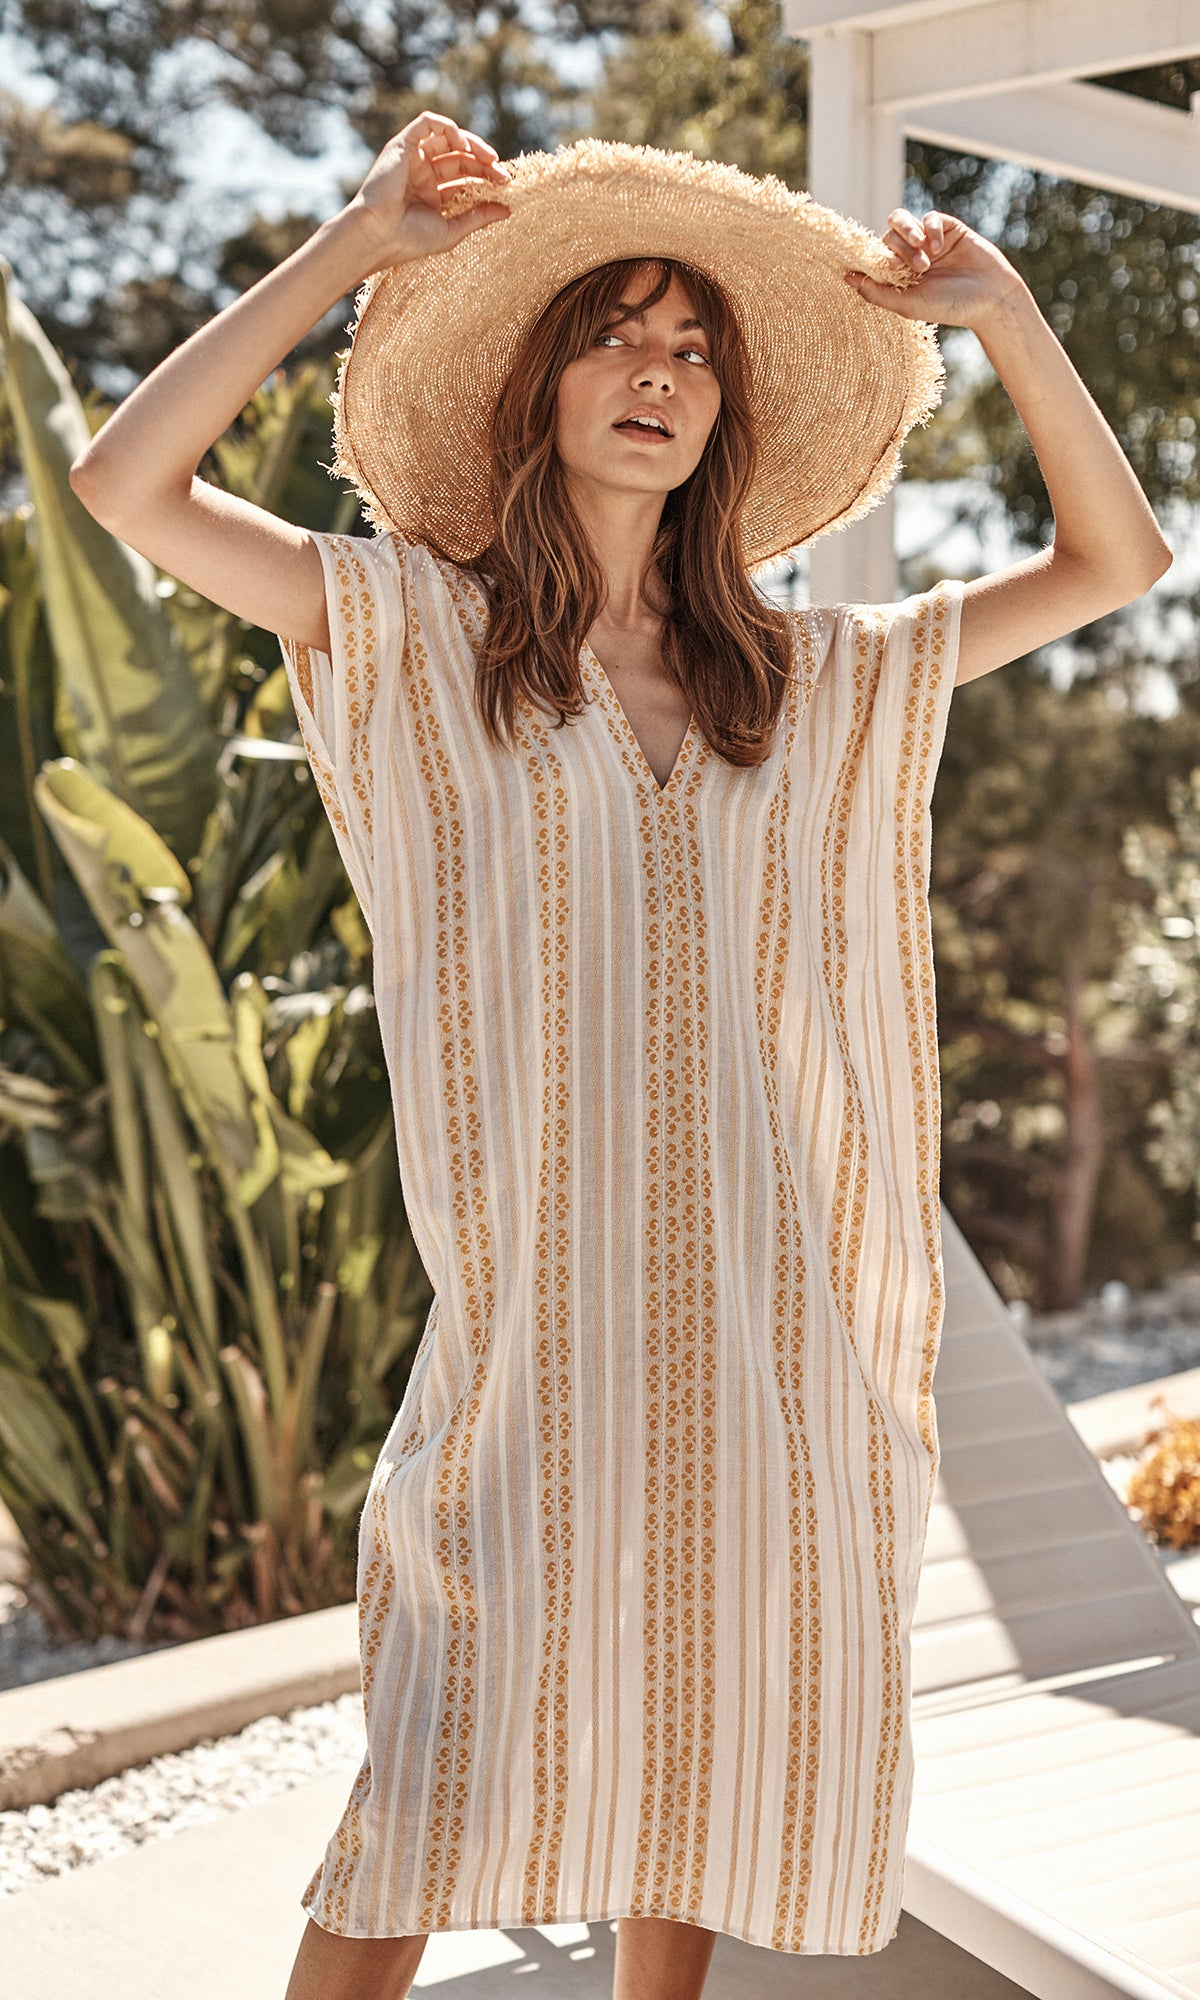 BEVERLY STRAW SUN HAT